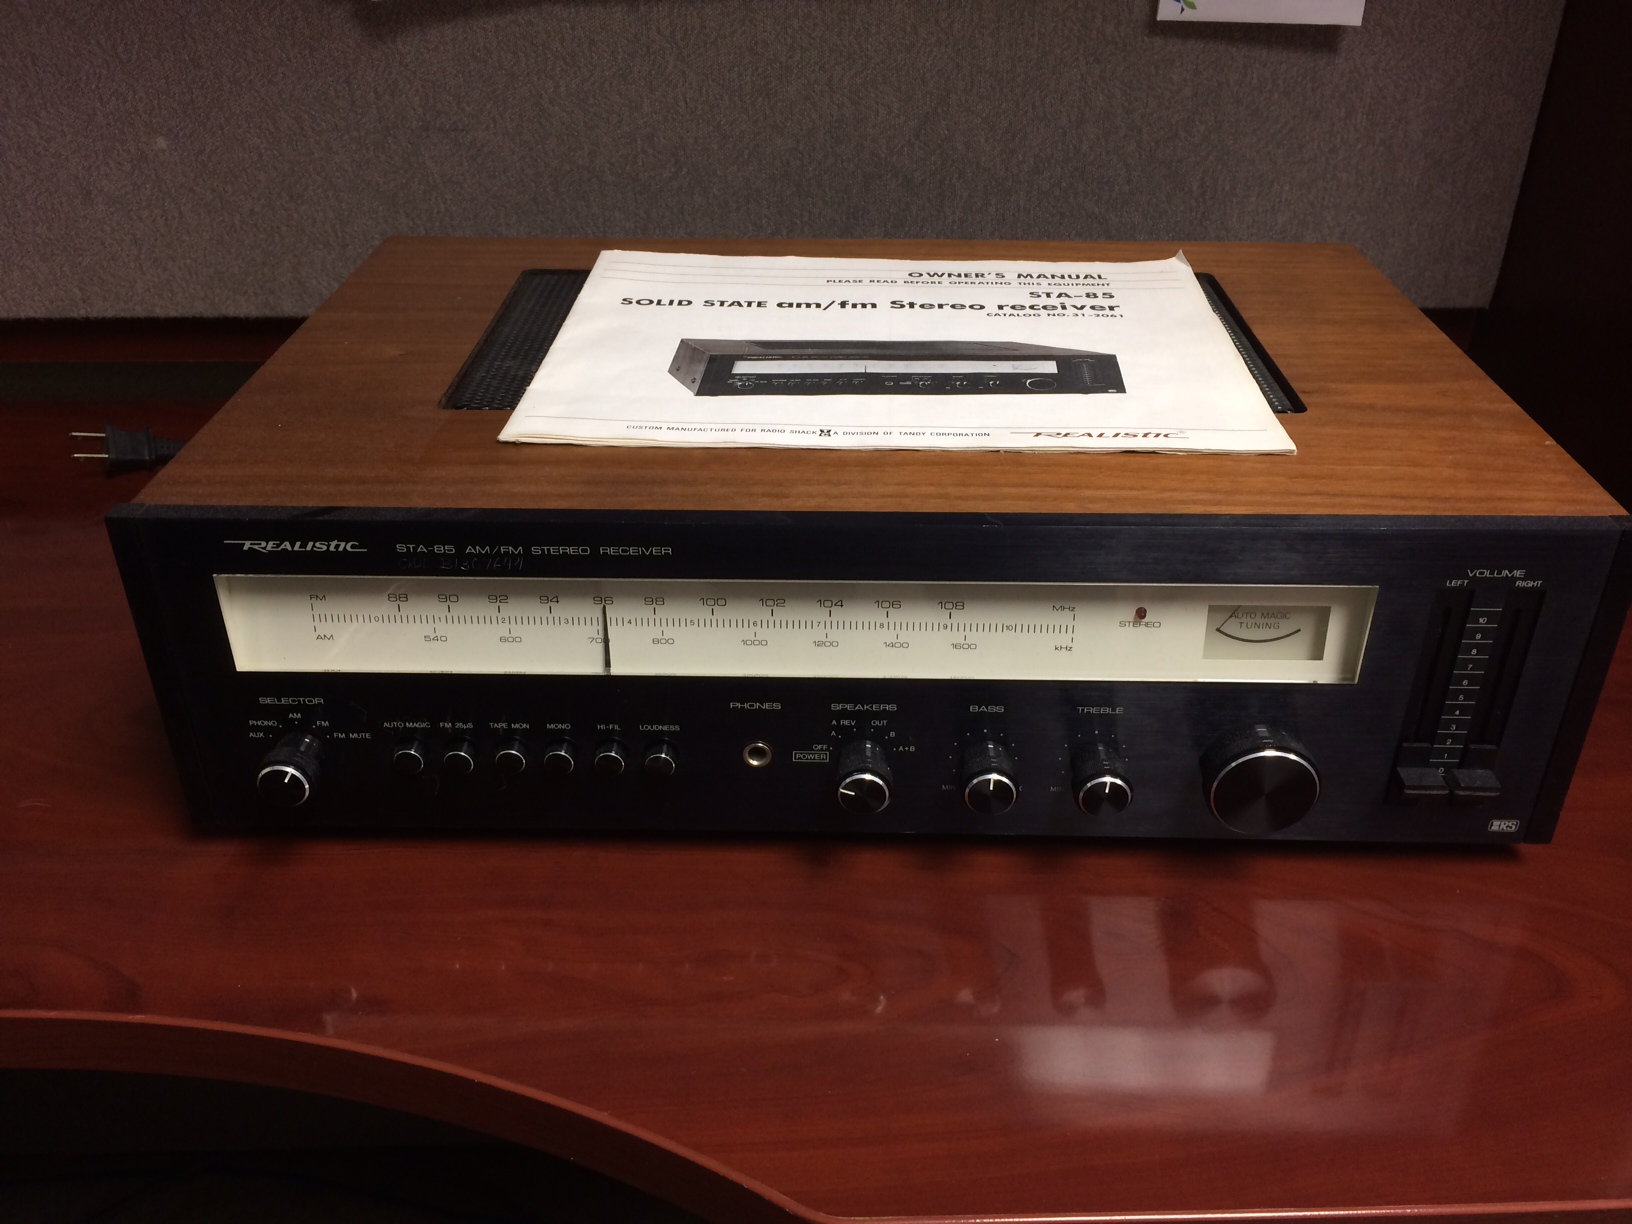 Realistic - STA-85 - Receiver - $150  Very cool receiver! Sounds fantastic with a warm vintage sound. Cleaned and serviced by a professional technician. 30 day warranty!!!  Power Output: 35 watts per channel RMS into 8 ohms. Harmonic Distortion: Less than 0.3%  Comes with the original owner's manual.    Ticket #:S140605-11